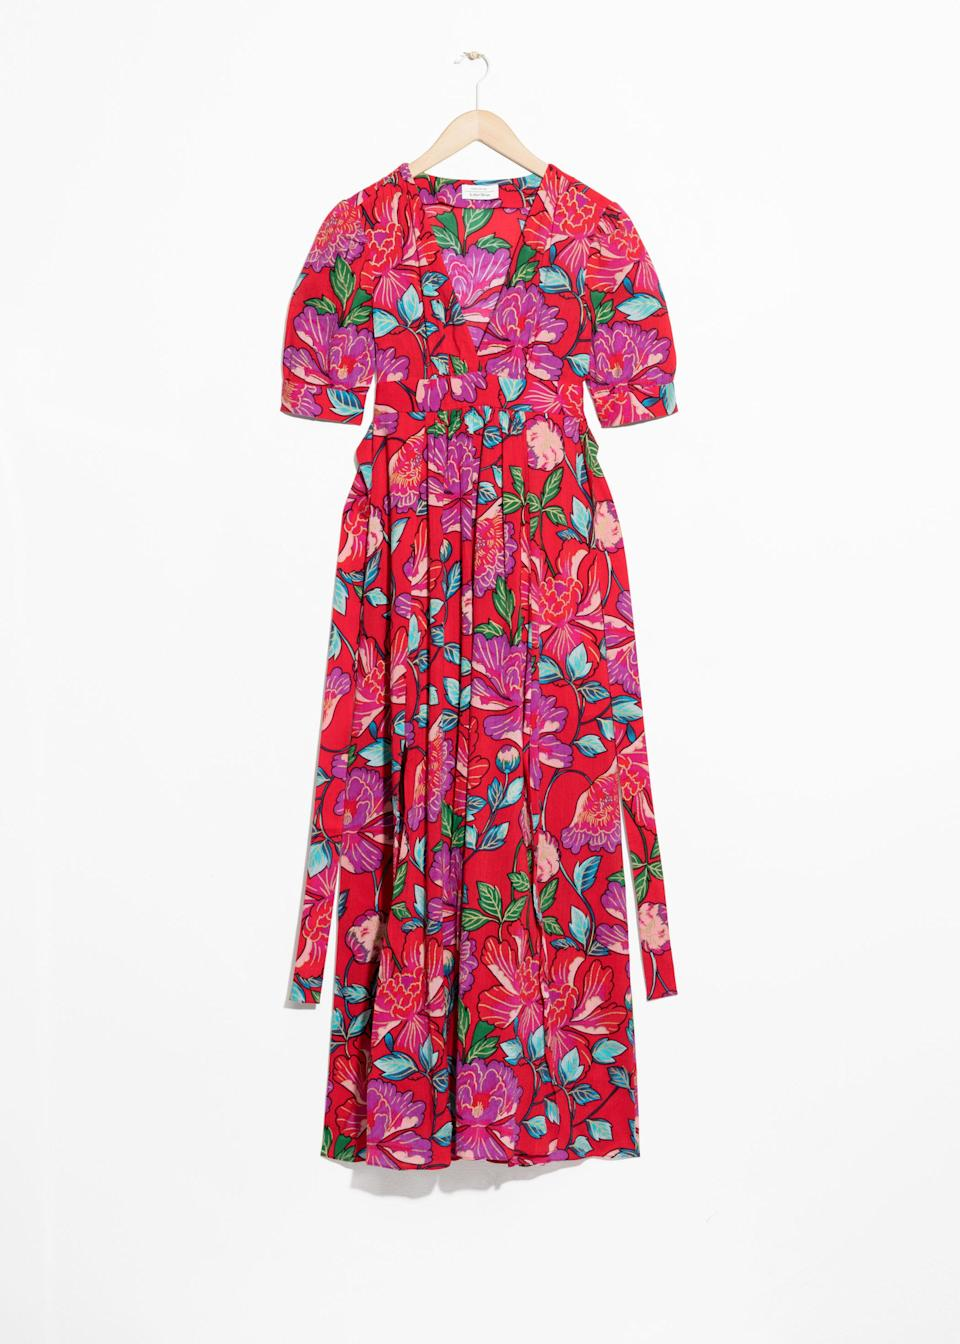 "<p>How fabulous is this designer-looking high street dress? The bold print is sure to make it a hit this summer, and is sure to make you the best dressed at any wedding. <br><em><a href=""https://www.stories.com/en_gbp/clothing/dresses/product.summer-print-dress-red.0493476002.html"" rel=""nofollow noopener"" target=""_blank"" data-ylk=""slk:Buy here."" class=""link rapid-noclick-resp"">Buy here.</a></em> </p>"